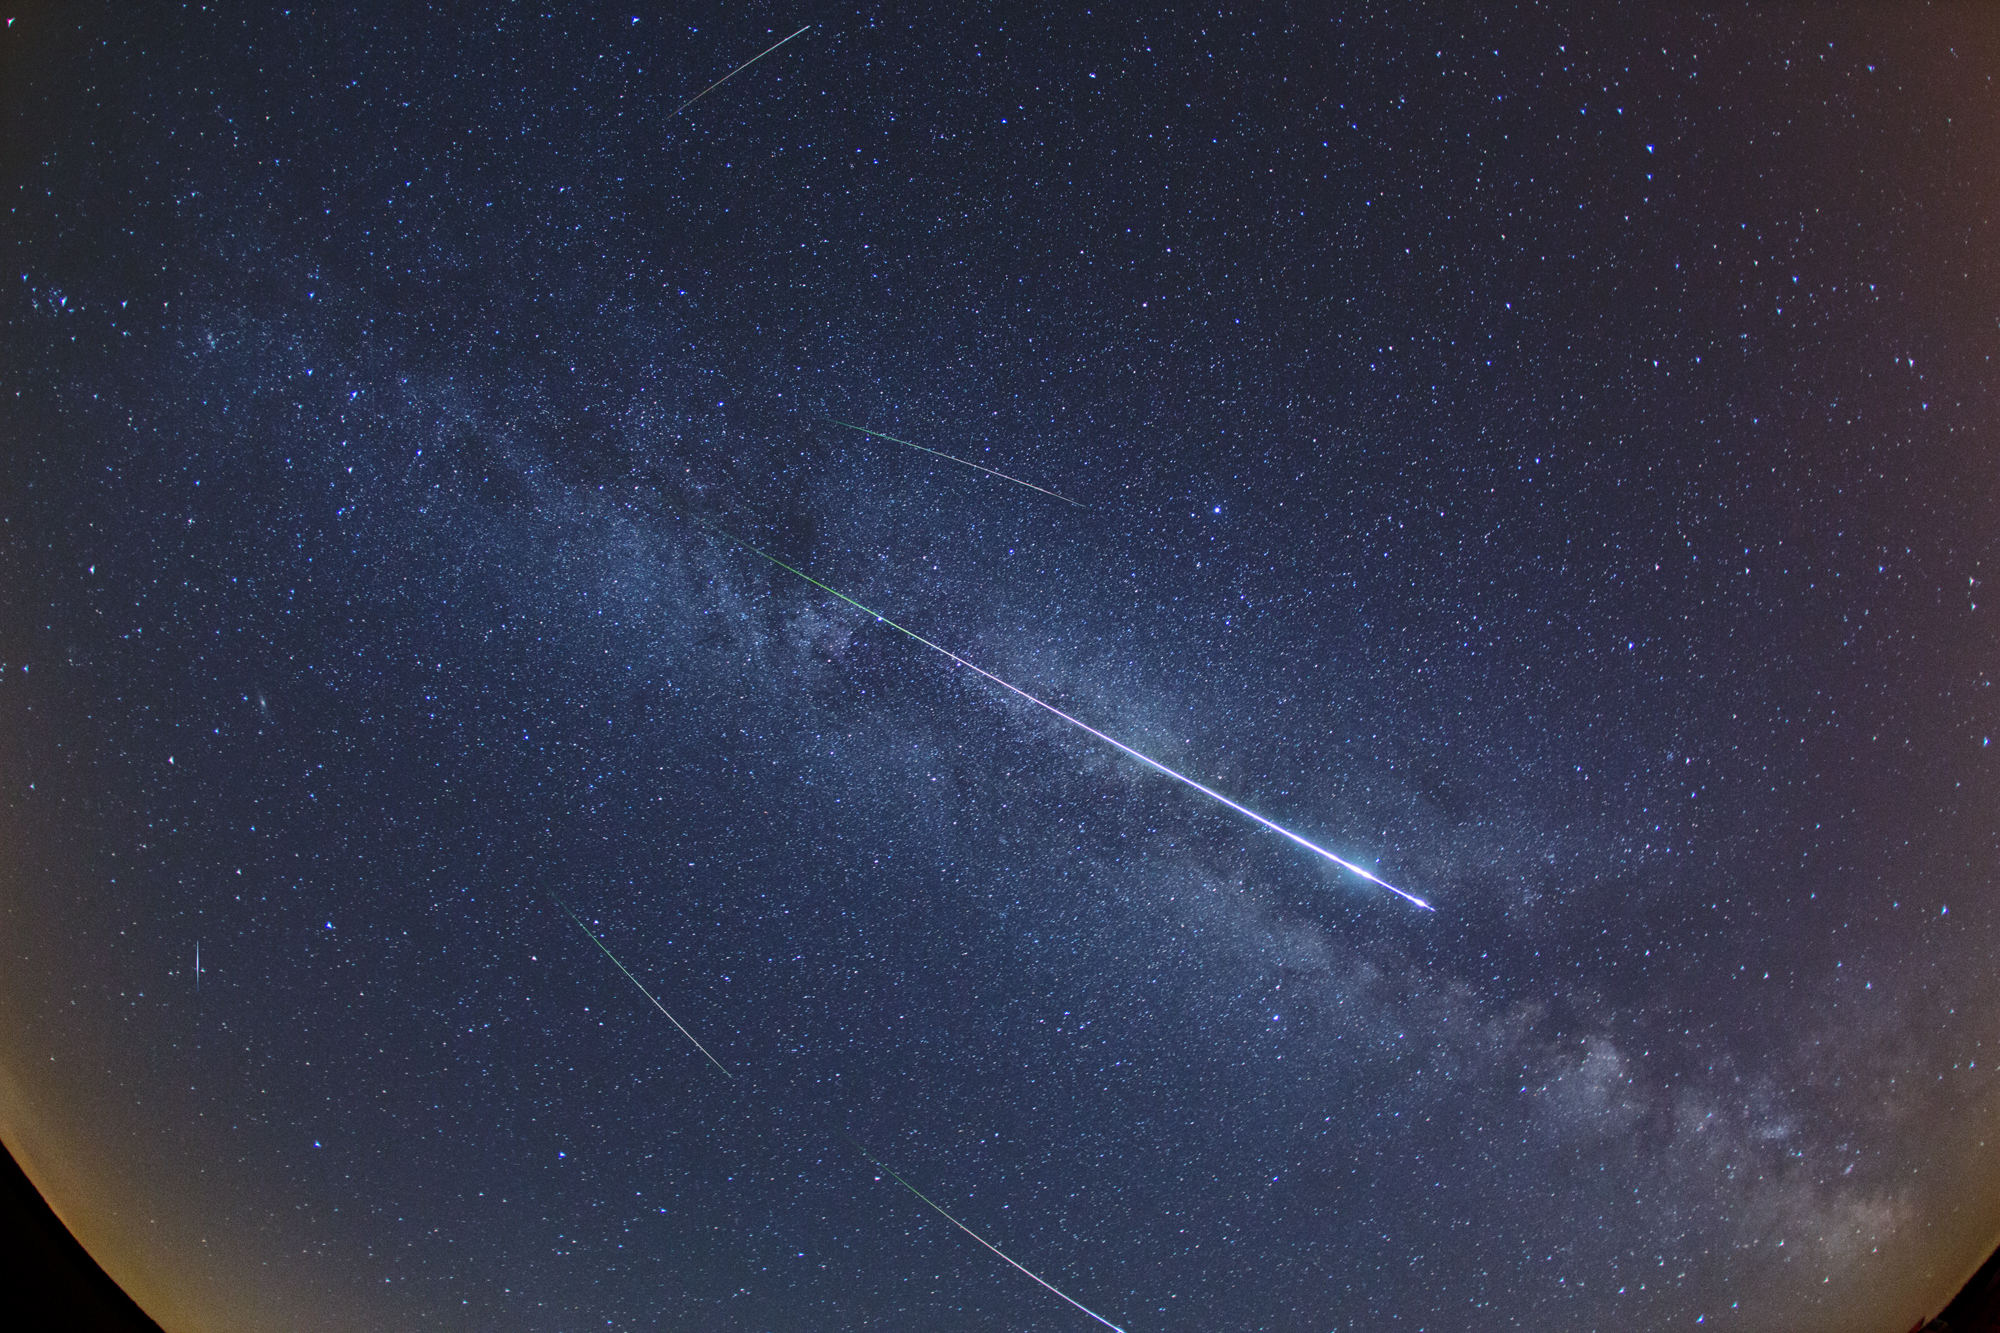 APOD: 2012 August 14 - Perseid Meteors and the Milky Way